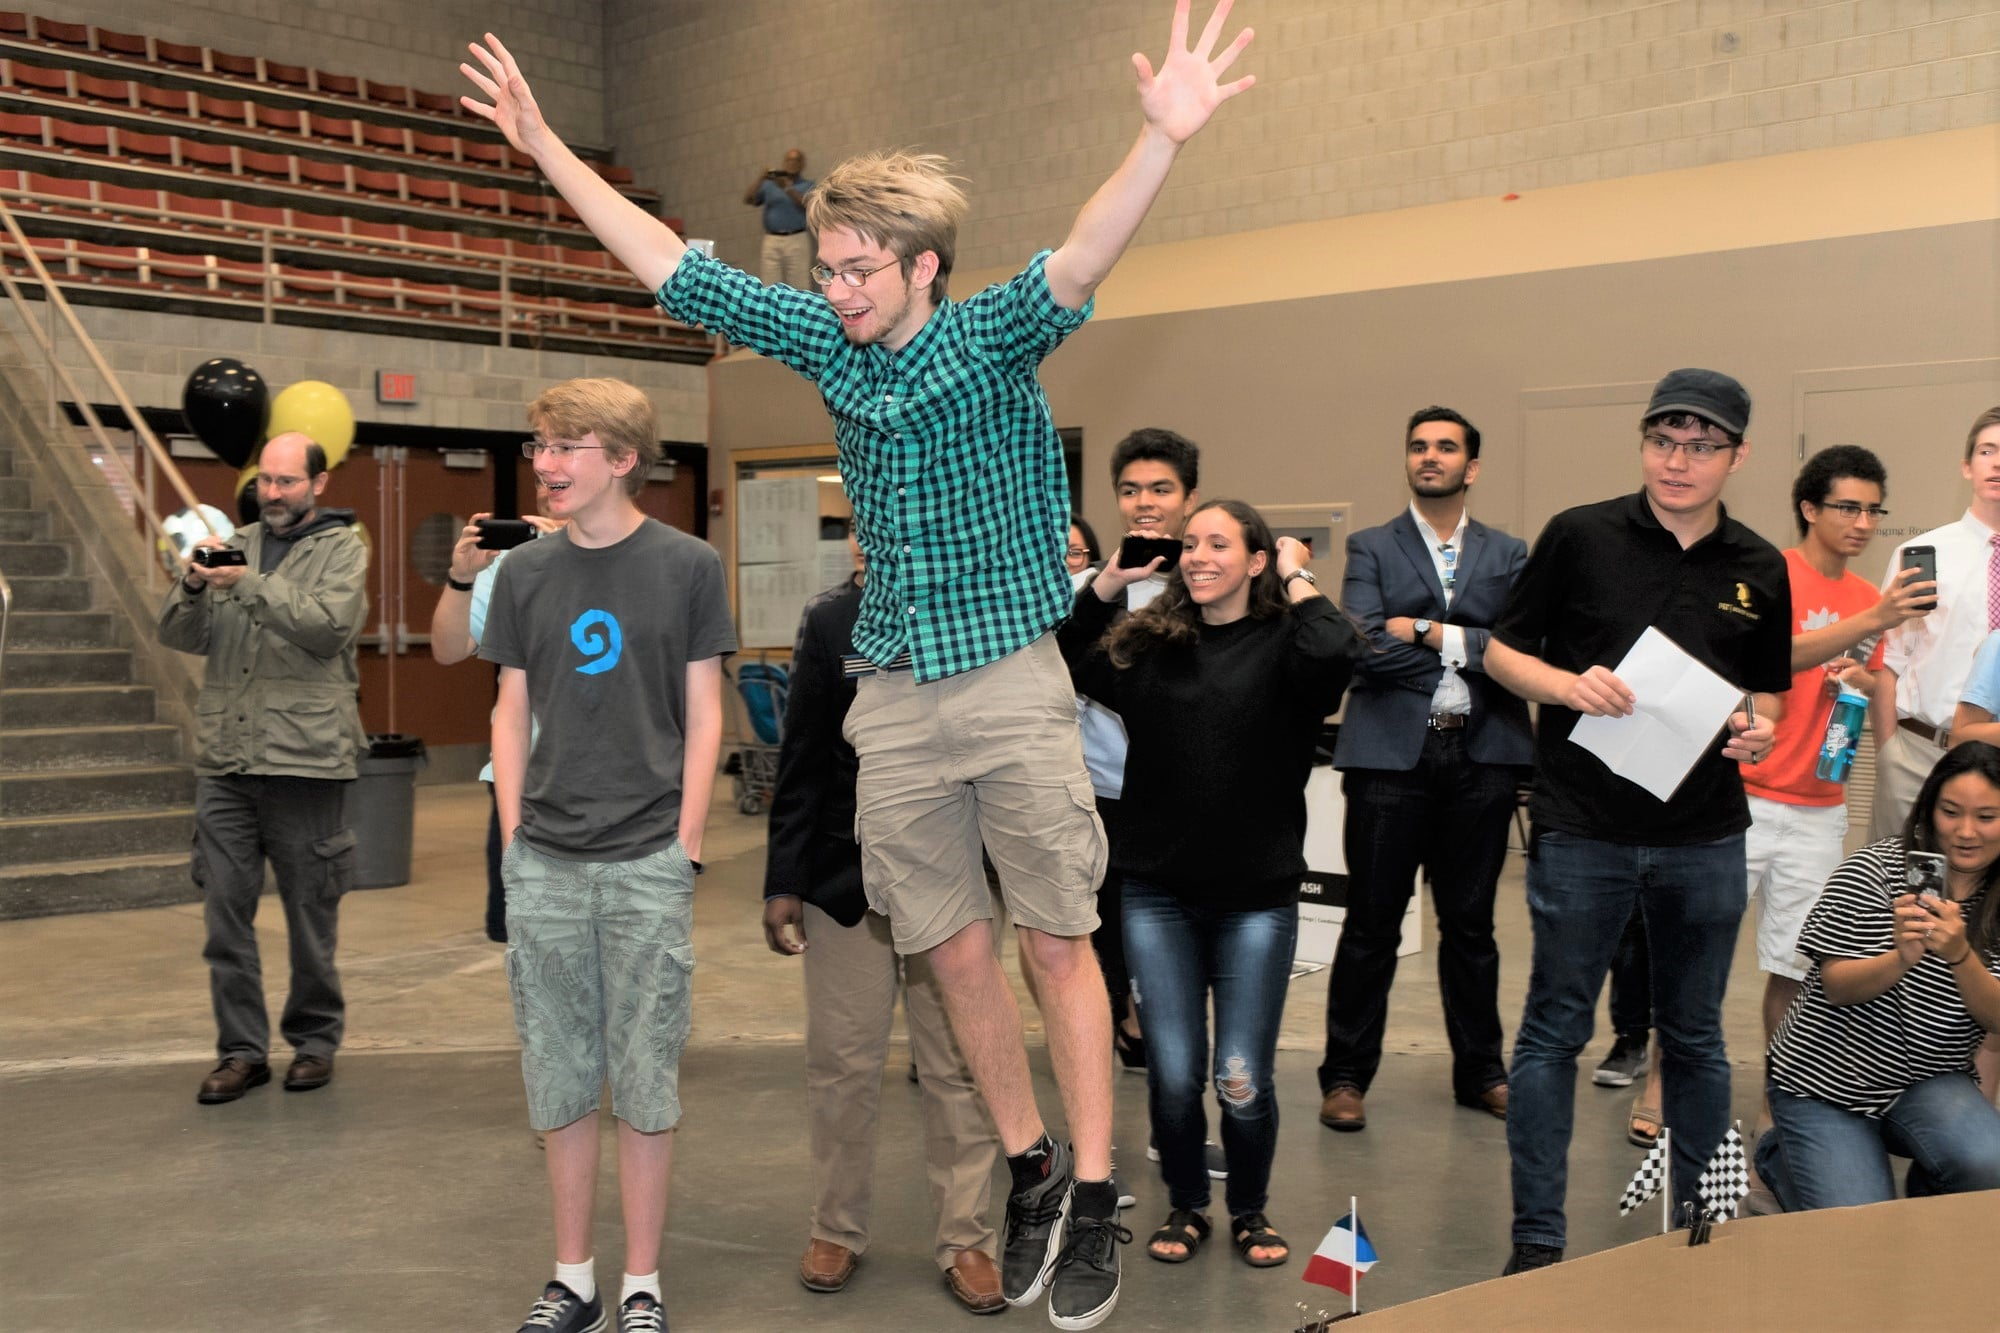 Teens watched their self-driving cars race around the track in MIT's Mini Grand Prix. the race culminated a summer of learning about self-driving cars.